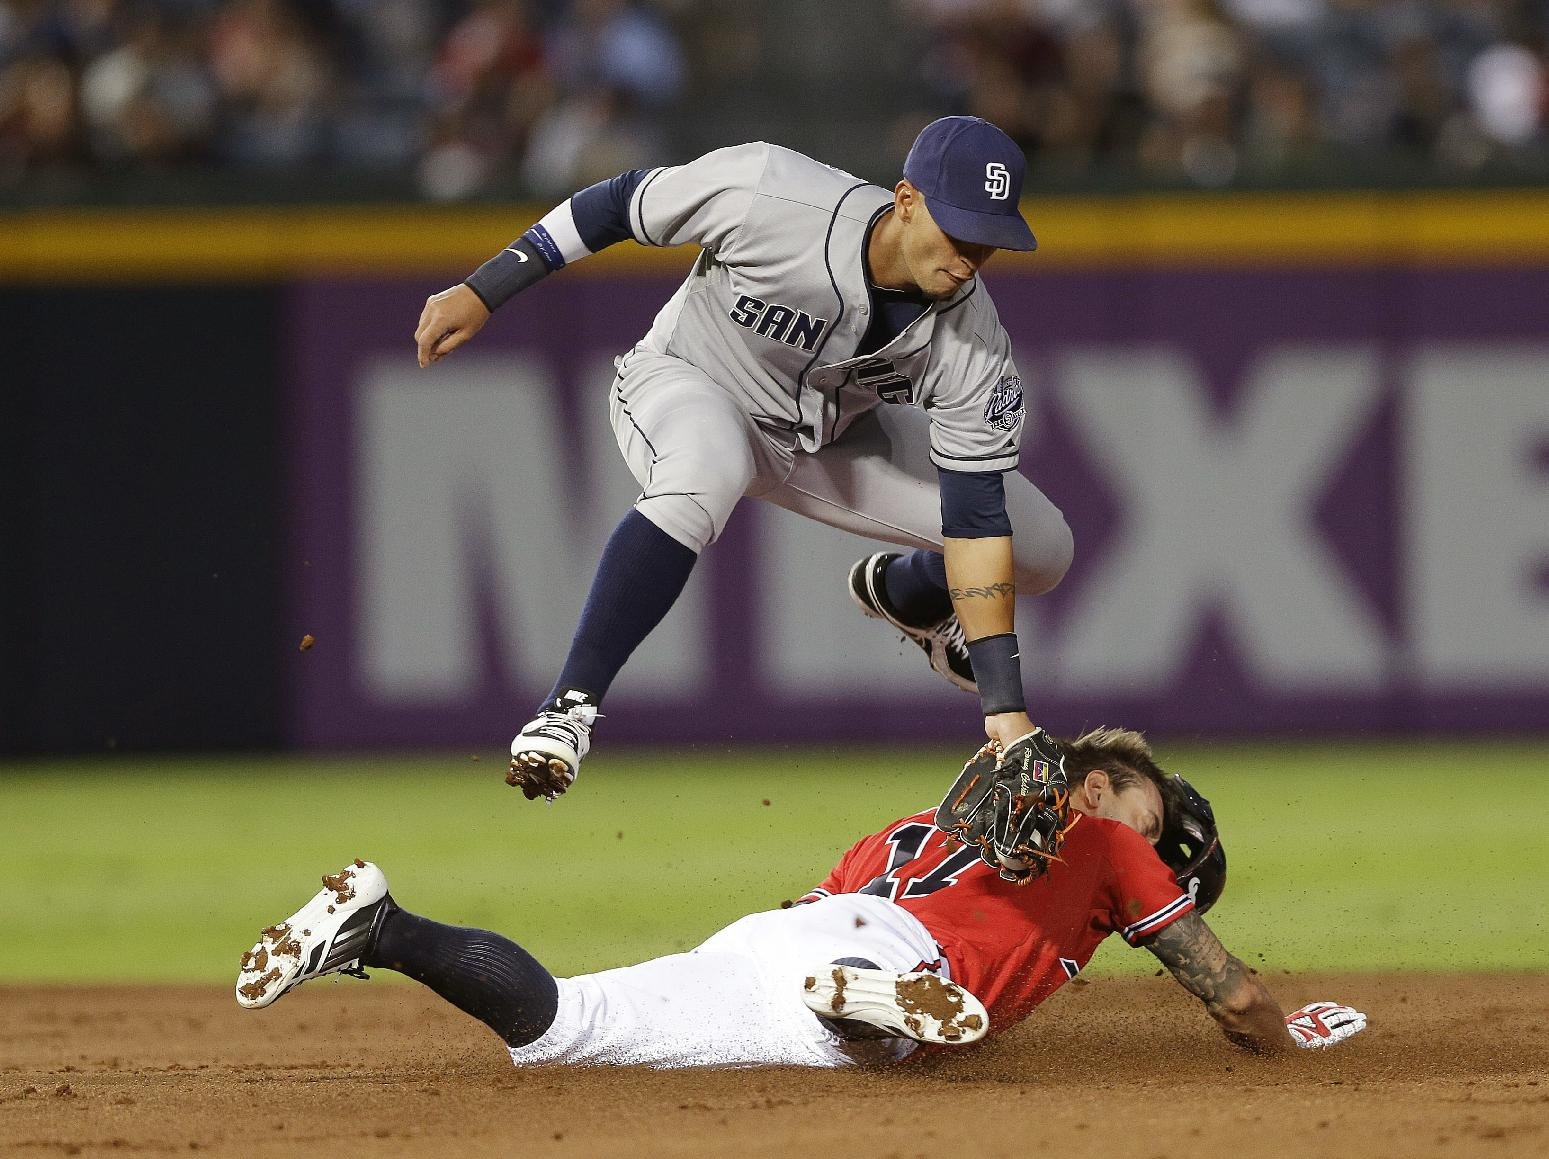 Atlanta Braves Jordan Schafer steals second base as San Diego Padres shortstop Ronny Cedeno handles the late throw in the first inning of a baseball game Friday, Sept. 13, 2013, in Atlanta